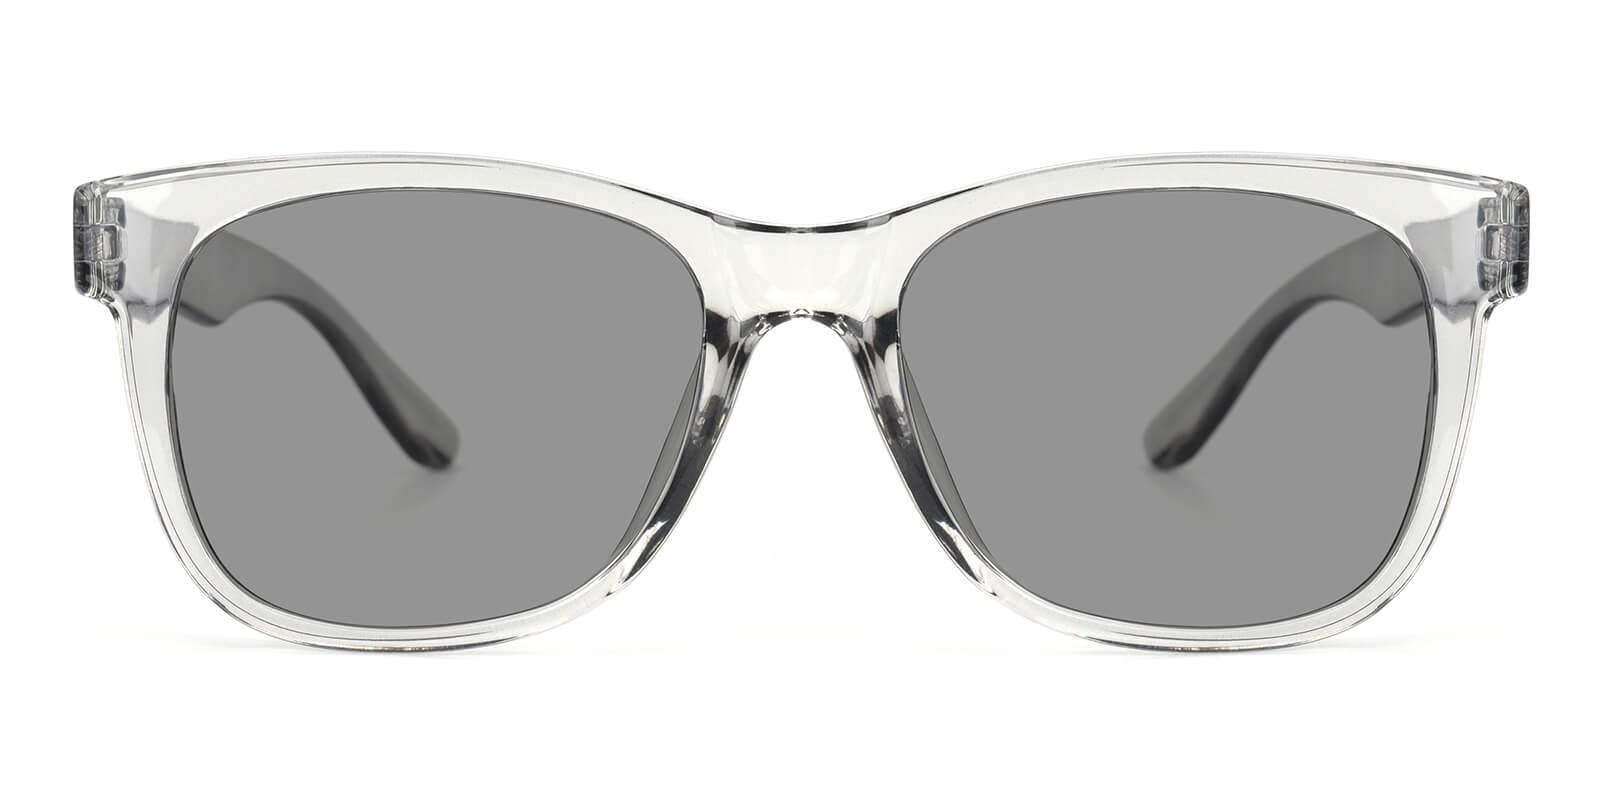 Tracly-Gray-Square / Cat-TR-Sunglasses-additional2